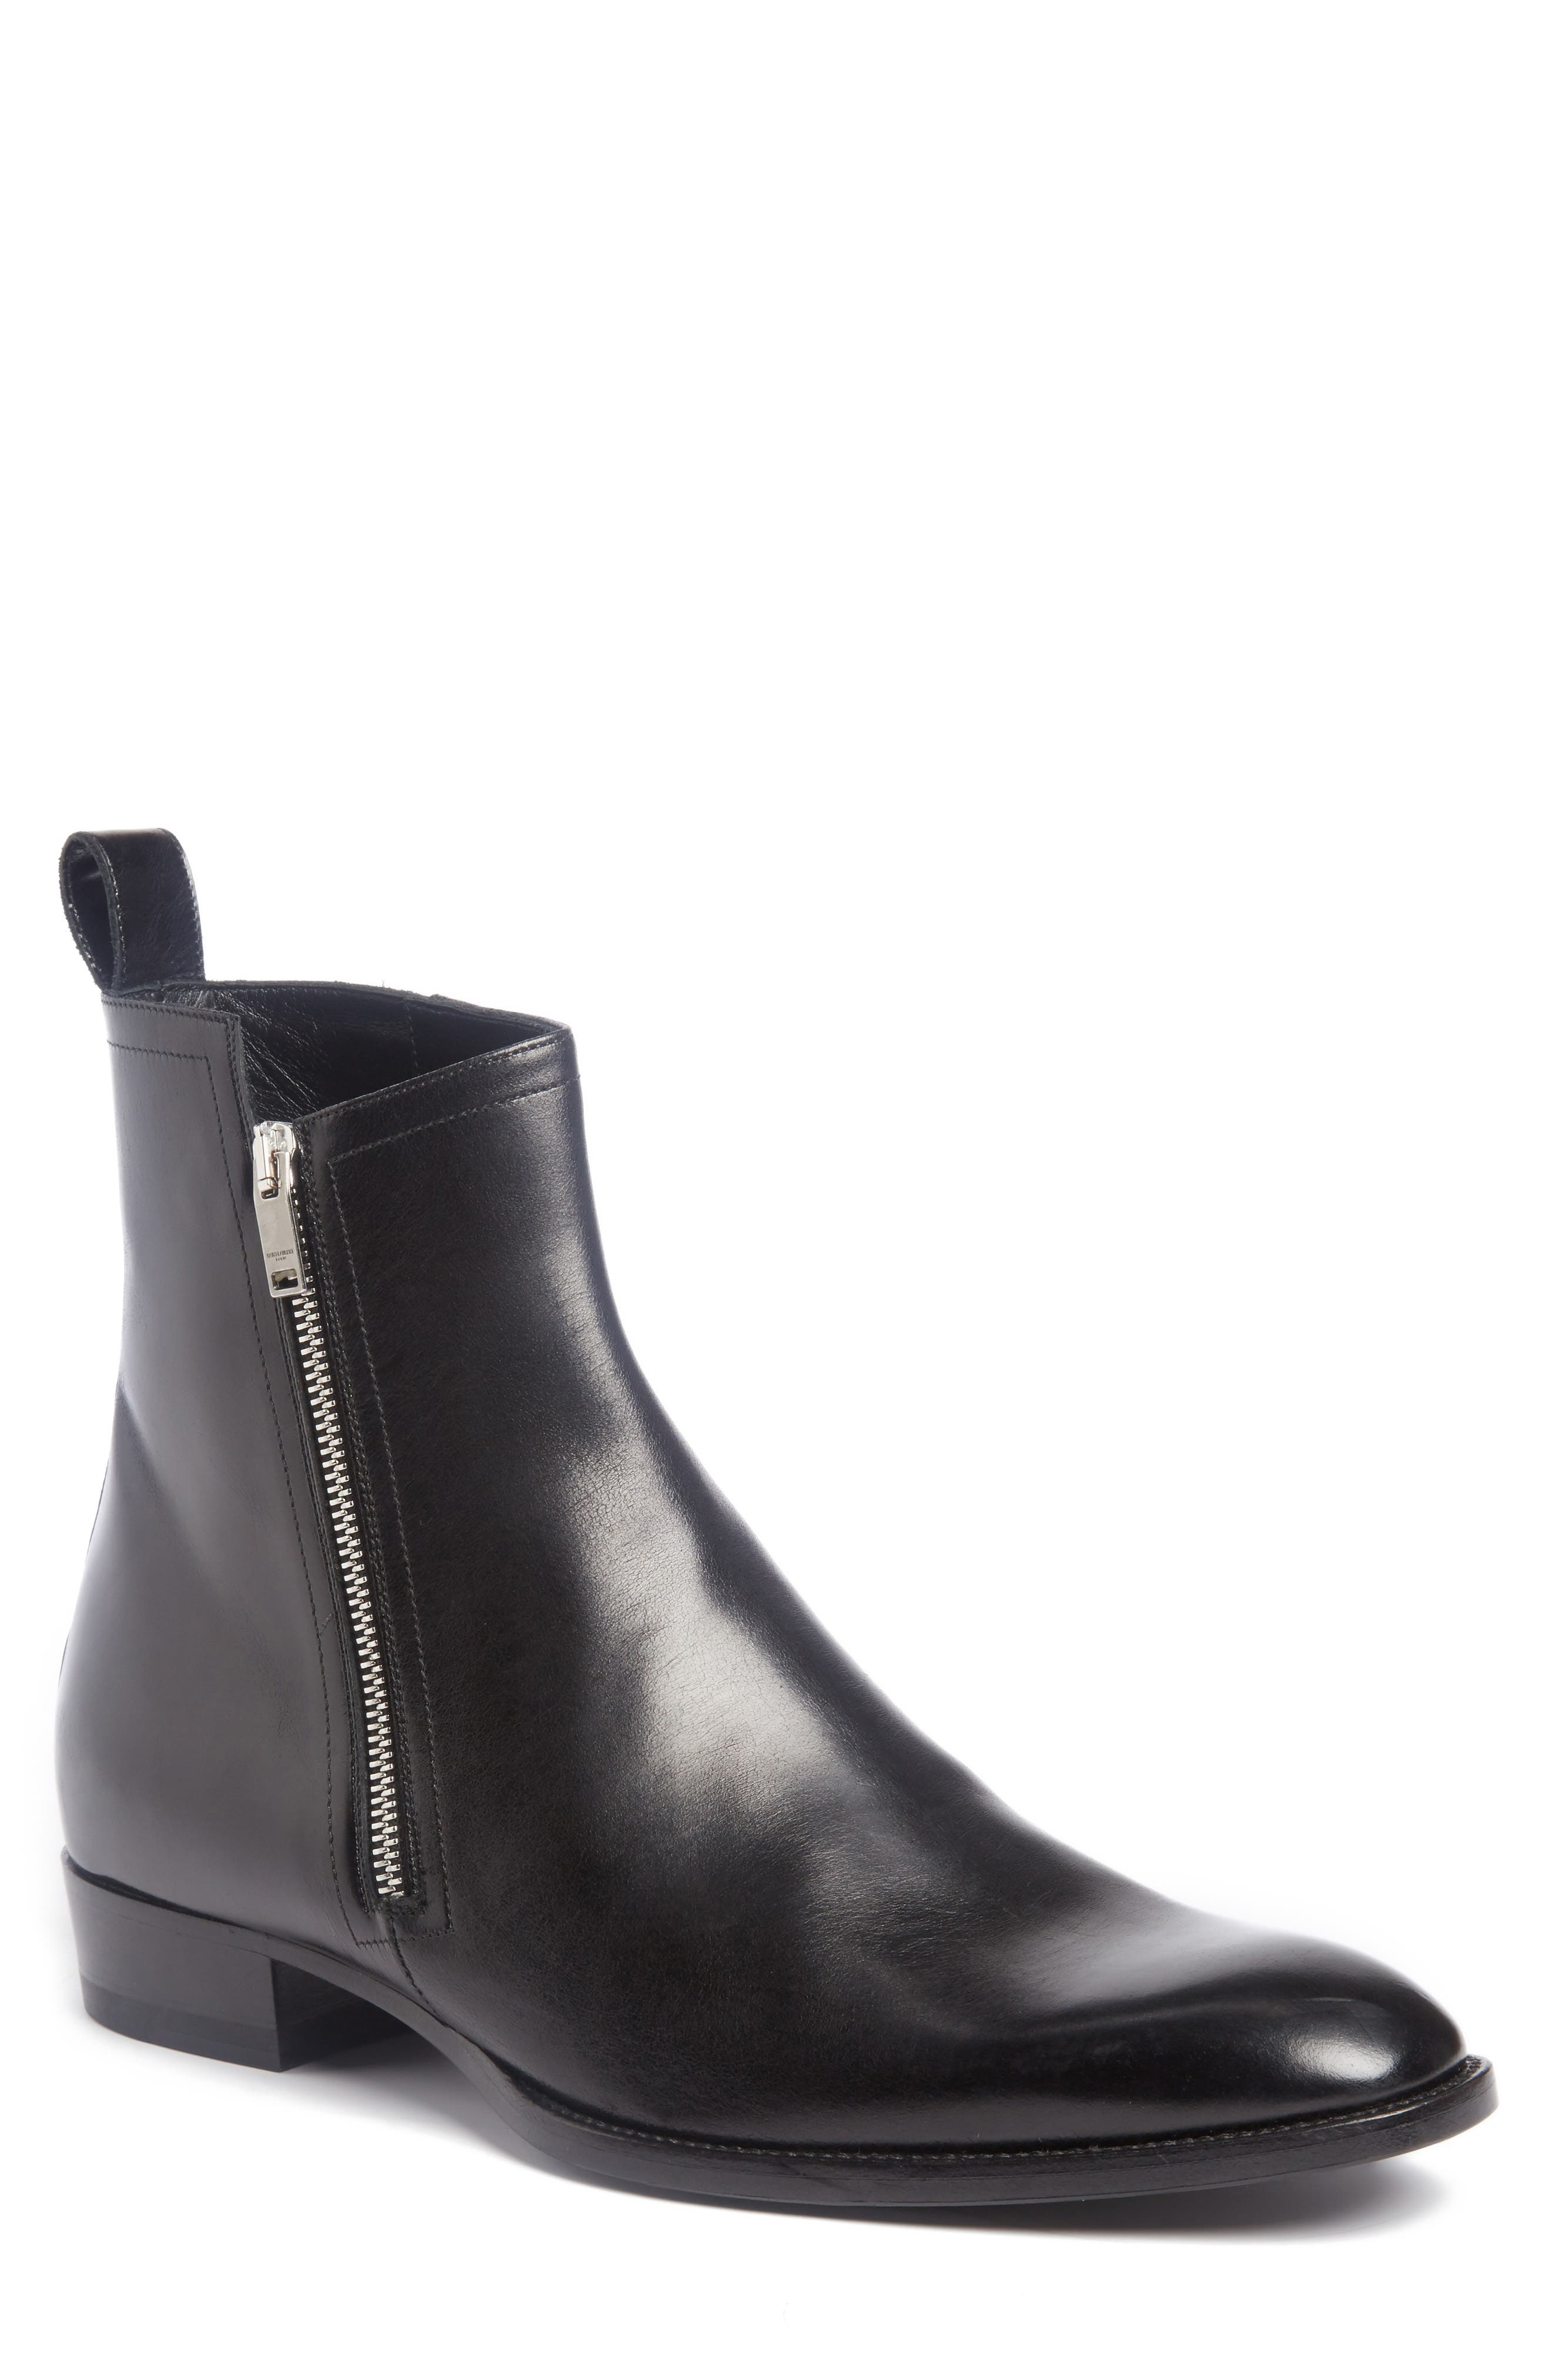 Wyatt Side Zip Boot,                         Main,                         color, Nero Leather